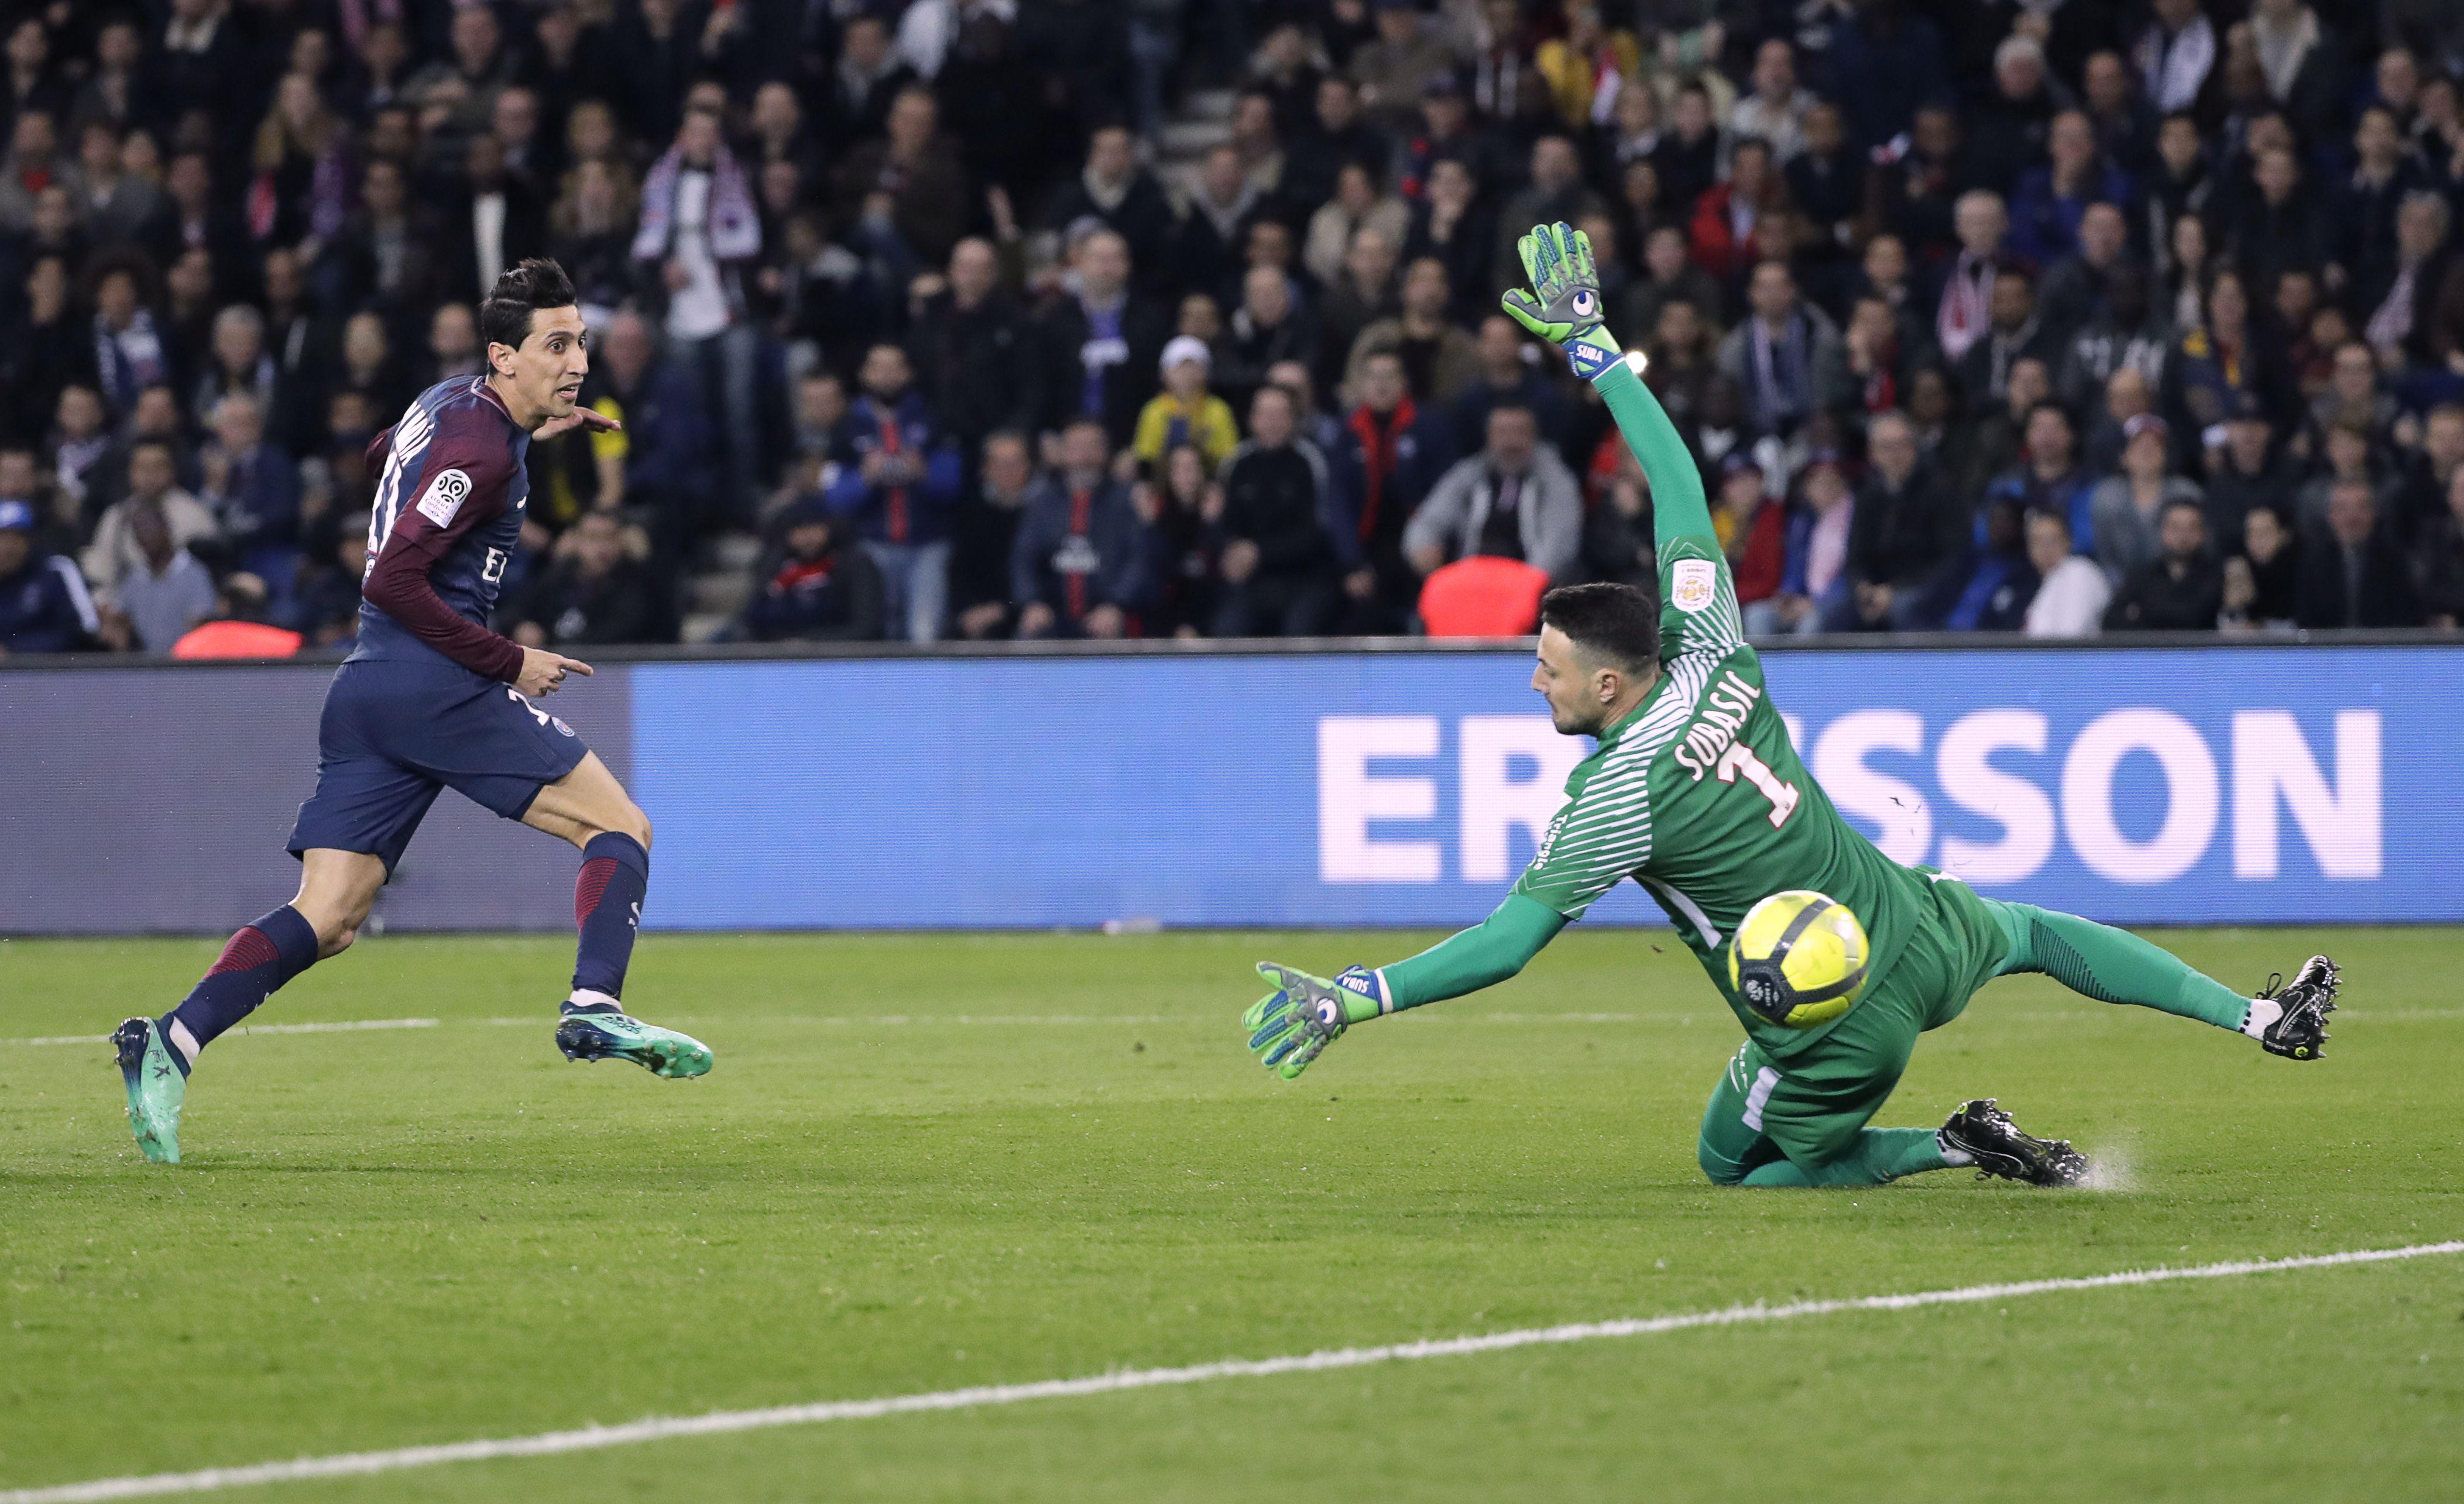 Angel Di Maria had a fine game for PSG and scored two goals